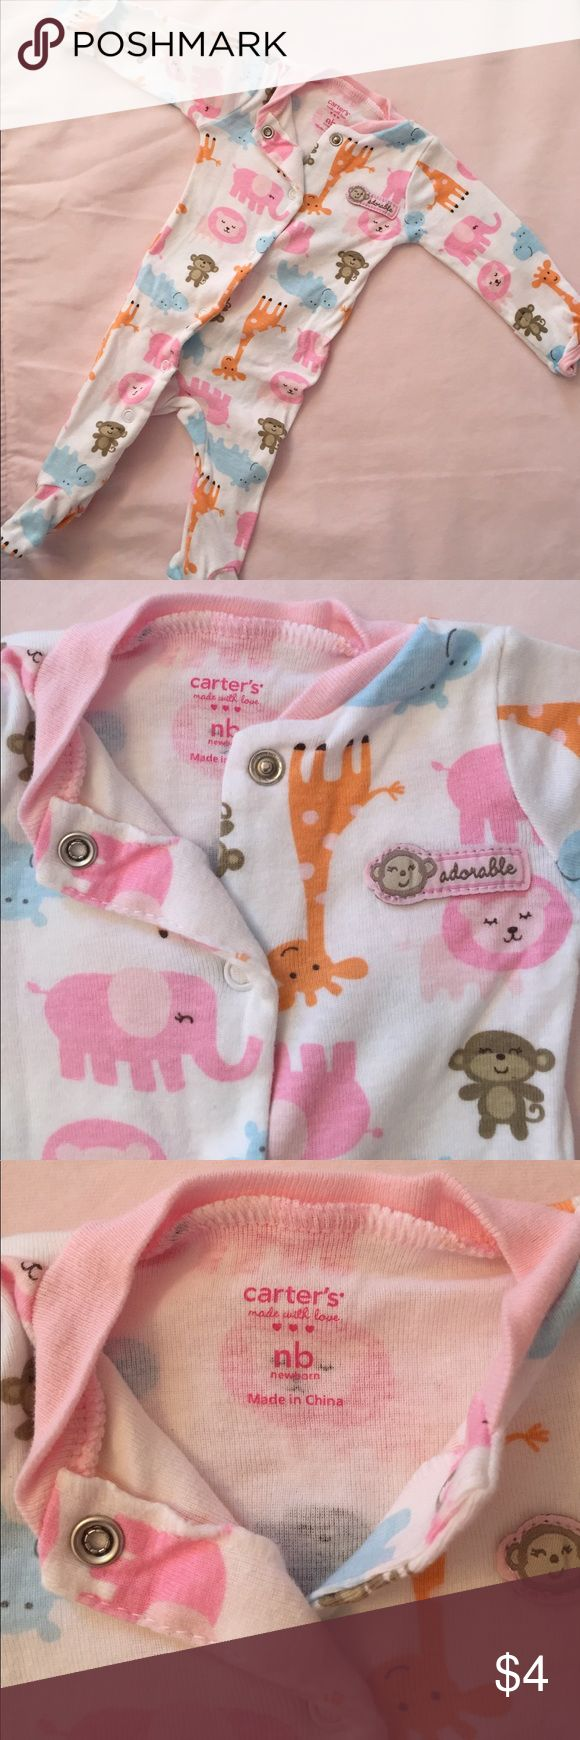 CARTER'S 🍼 Newborn Sleep 'N Play Carter's Animal Print Sleep 'N Play with built-in Mittens🍼SIZE NB🍼Barely worn, Like New. BUNDLE with other items and MAKE AN OFFER! Carter's One Pieces Footies